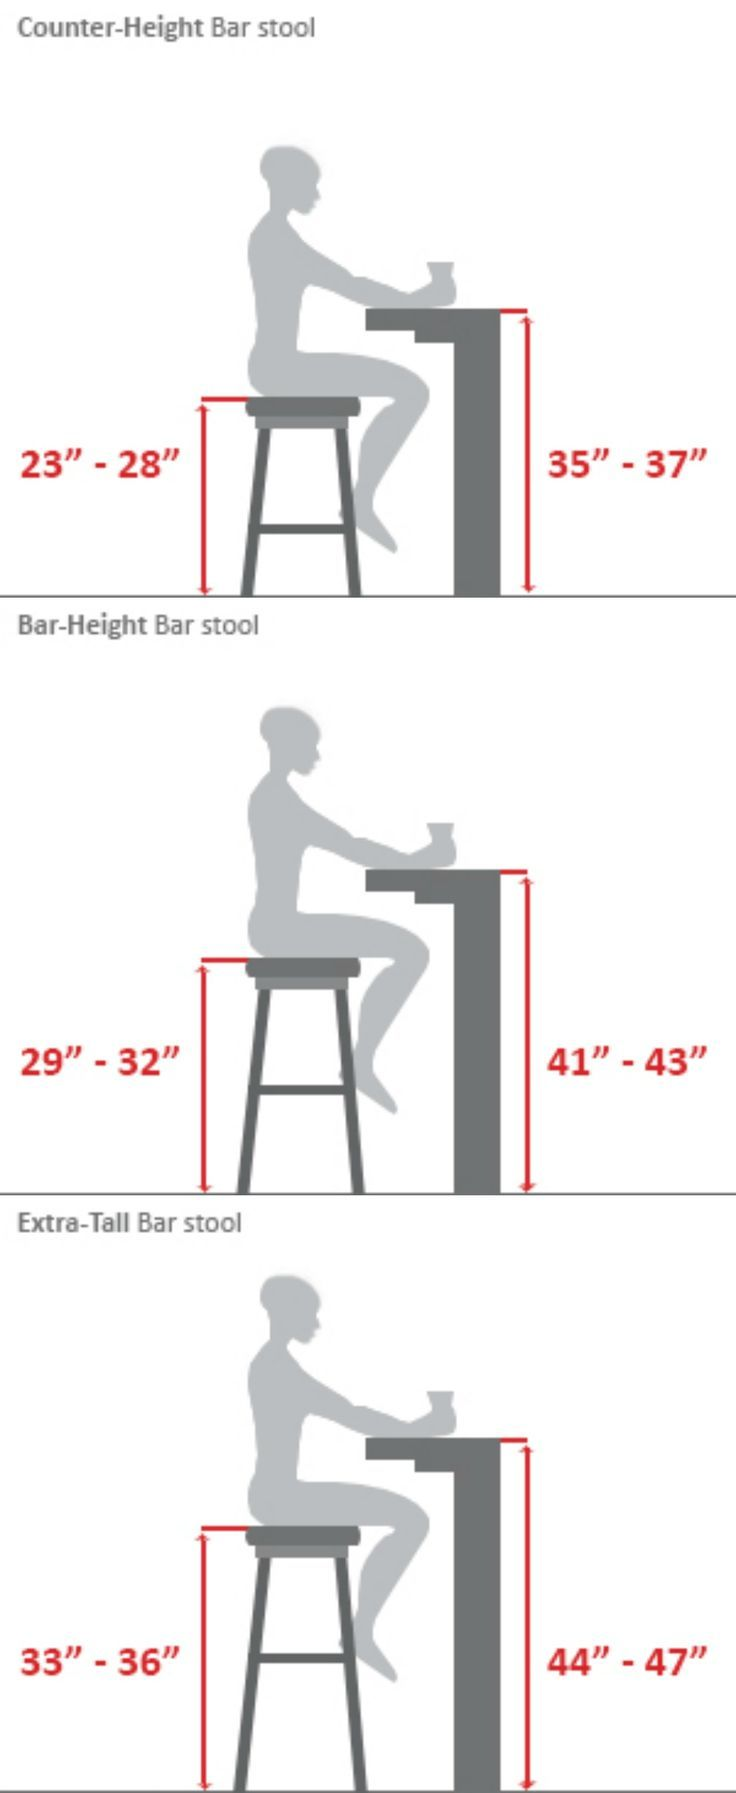 Bar Stool Buying GuideOr The Builders Guide When